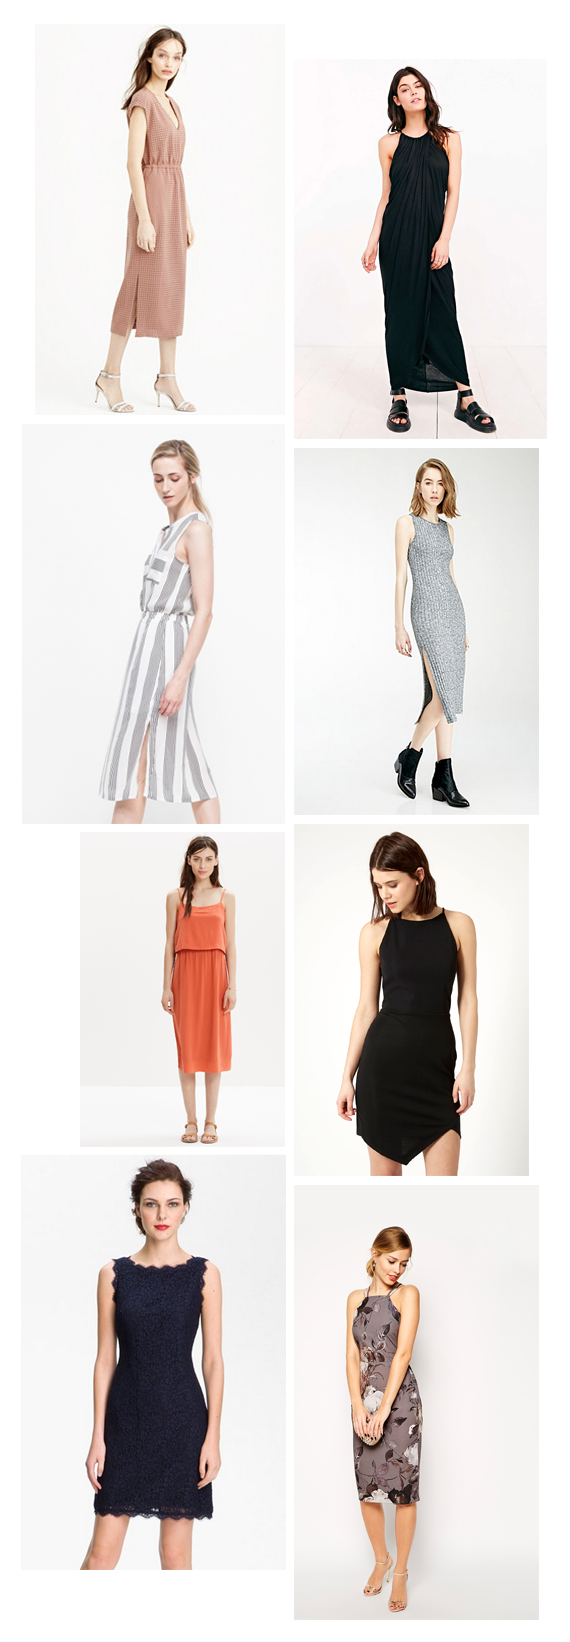 wedding guest dresses | almost makes perfect